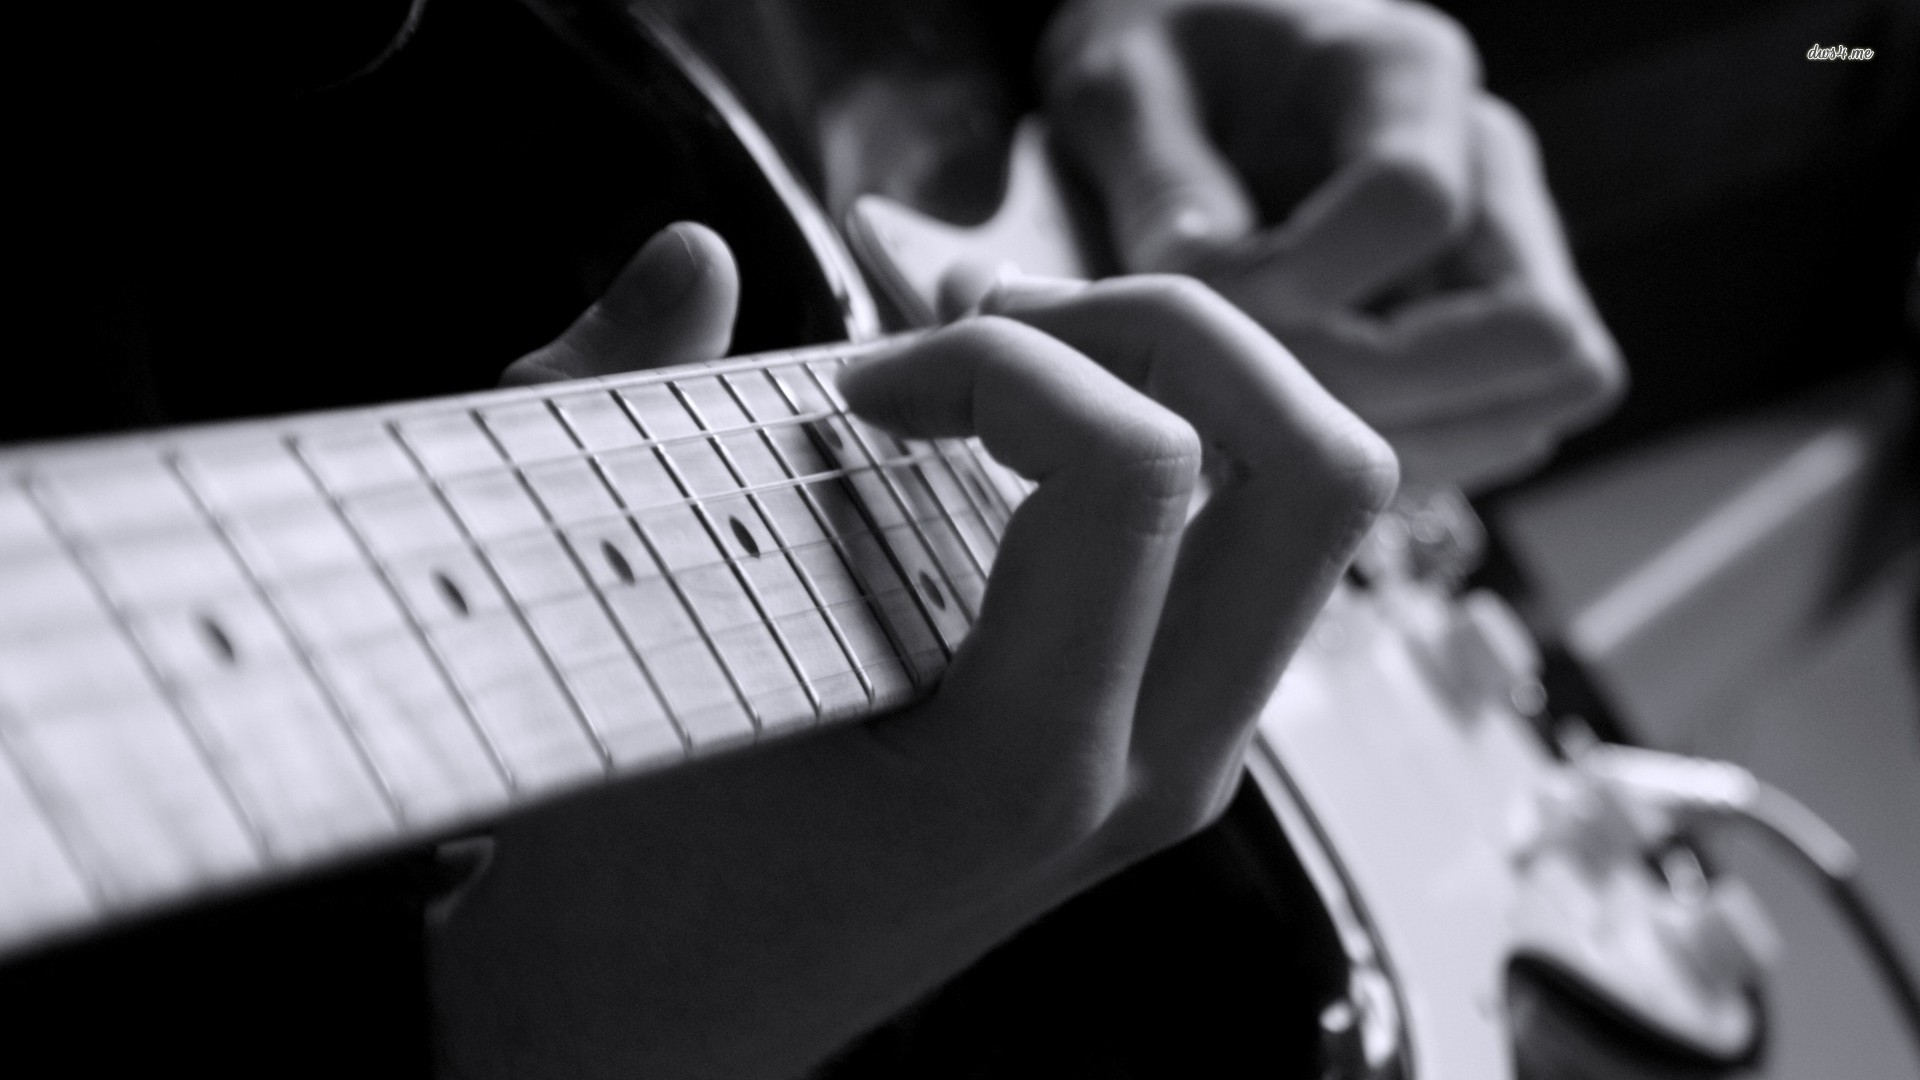 Res: 1920x1080, Playing The Guitar wallpaper Girl Playing The Guitar wallpapers HD free -  404769